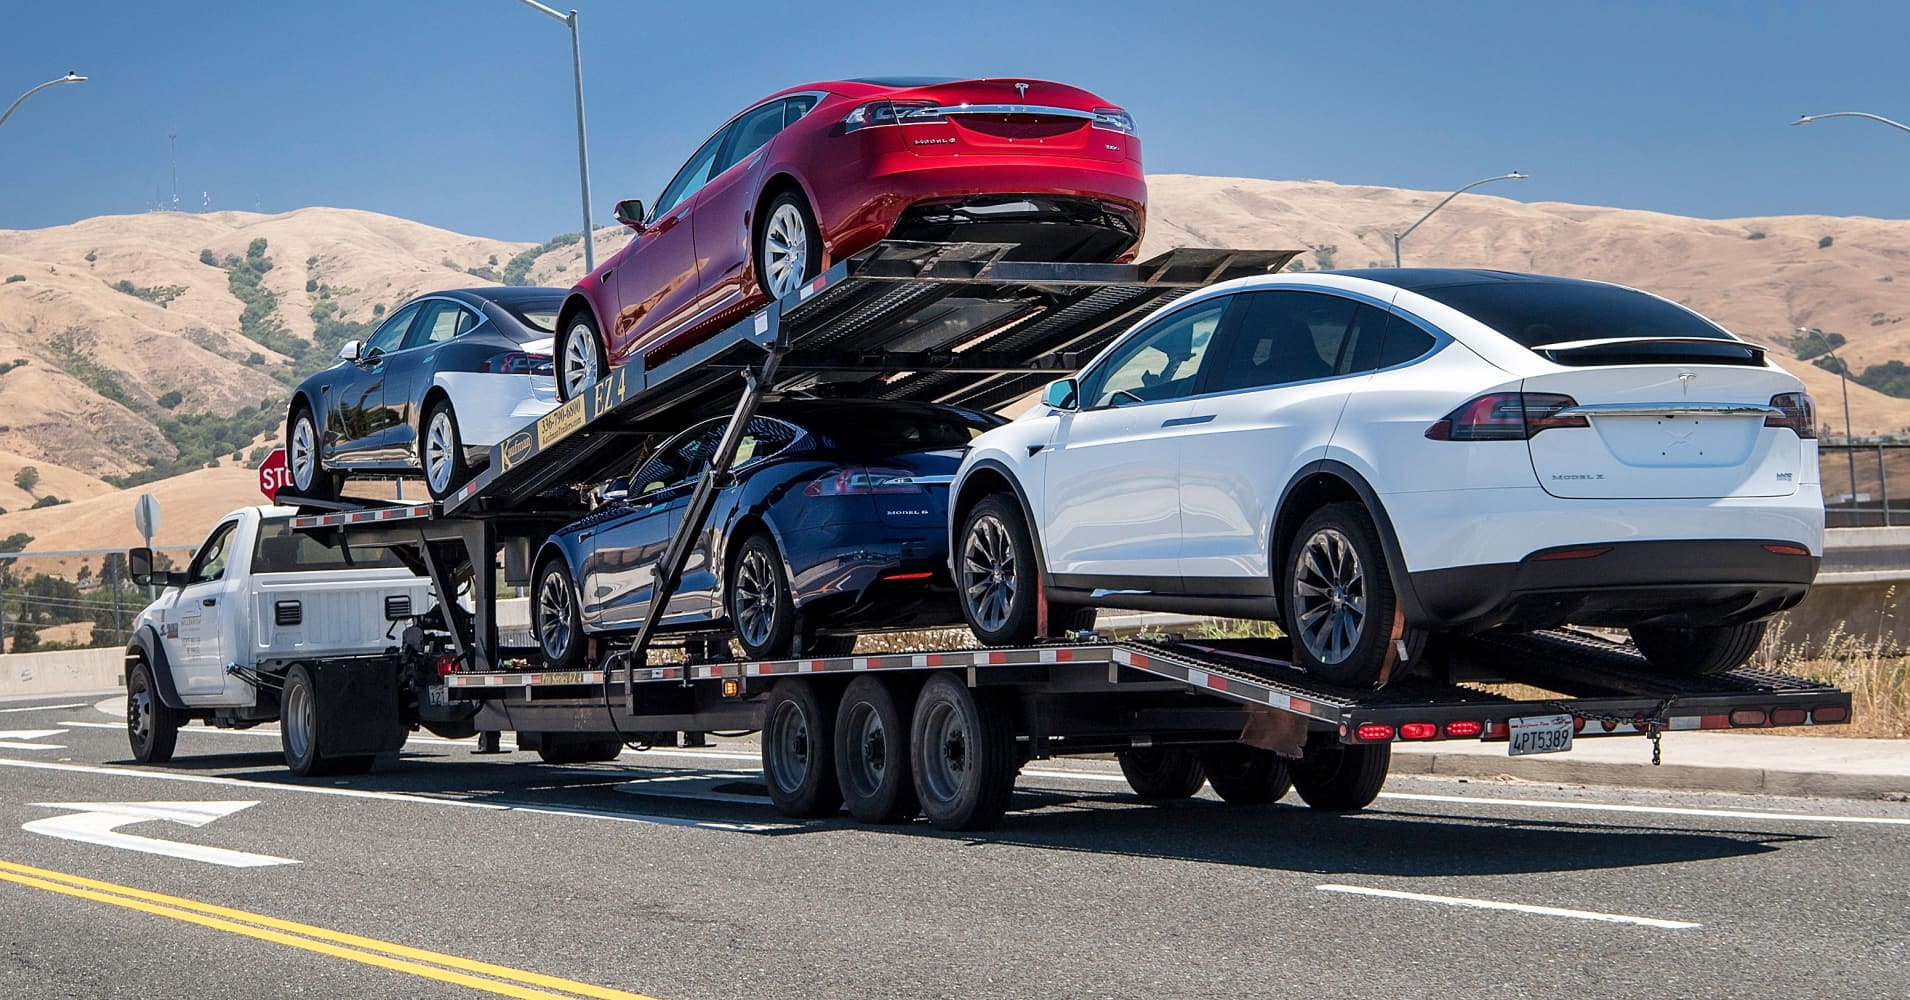 Tesla produced 7,400 Model 3s as the quarter kicks off, report says